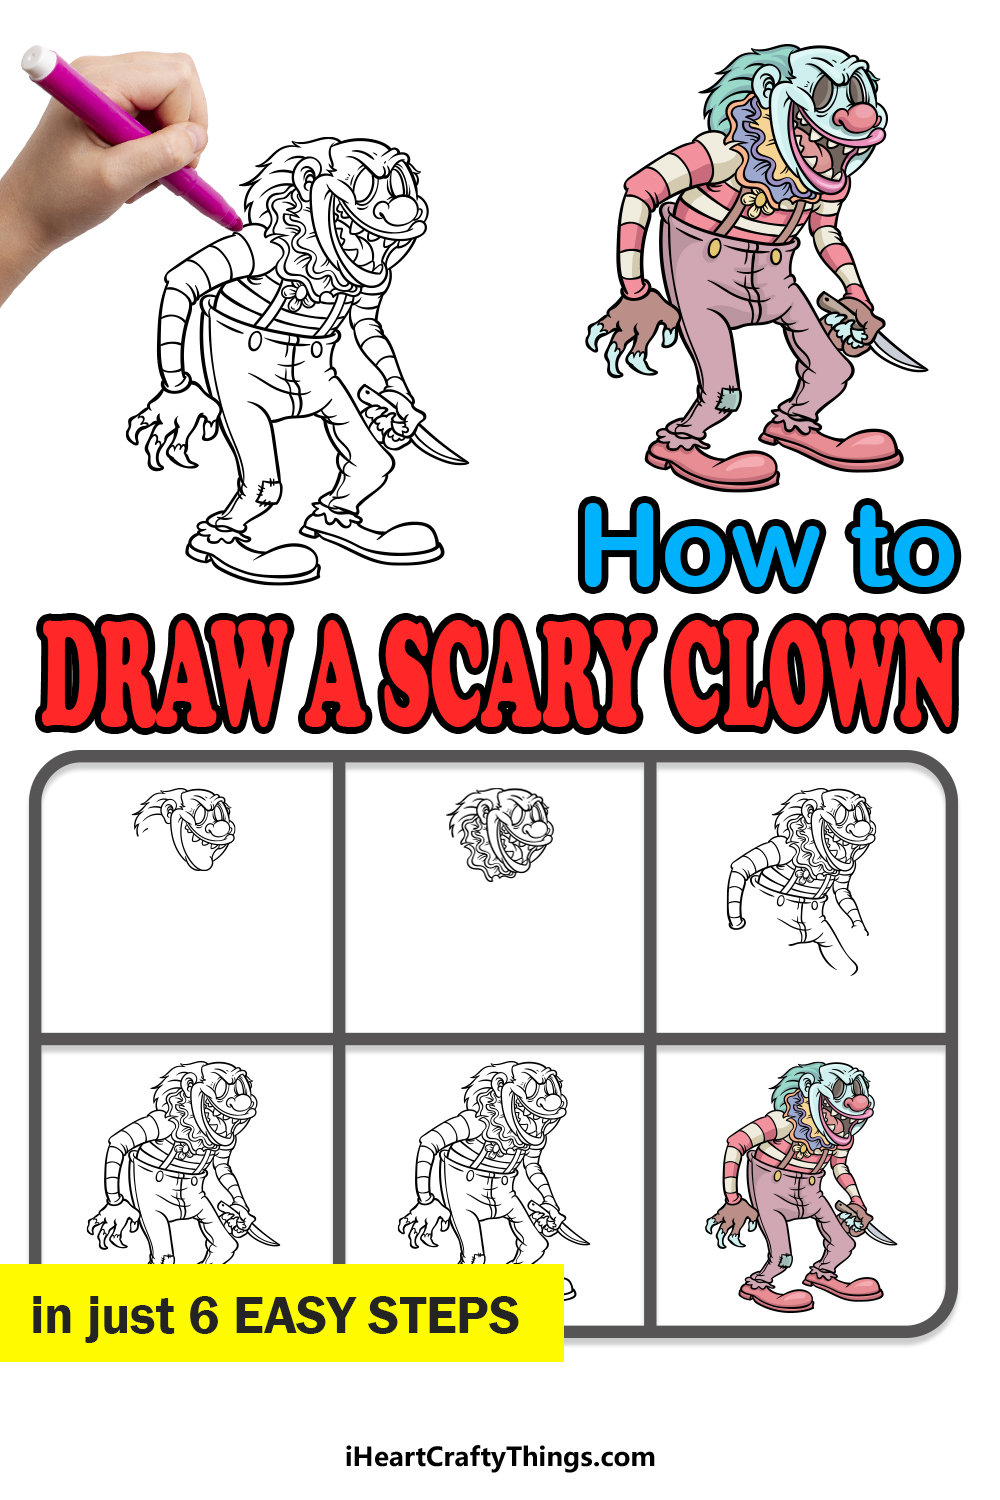 how to draw a scary clown in 6 easy steps